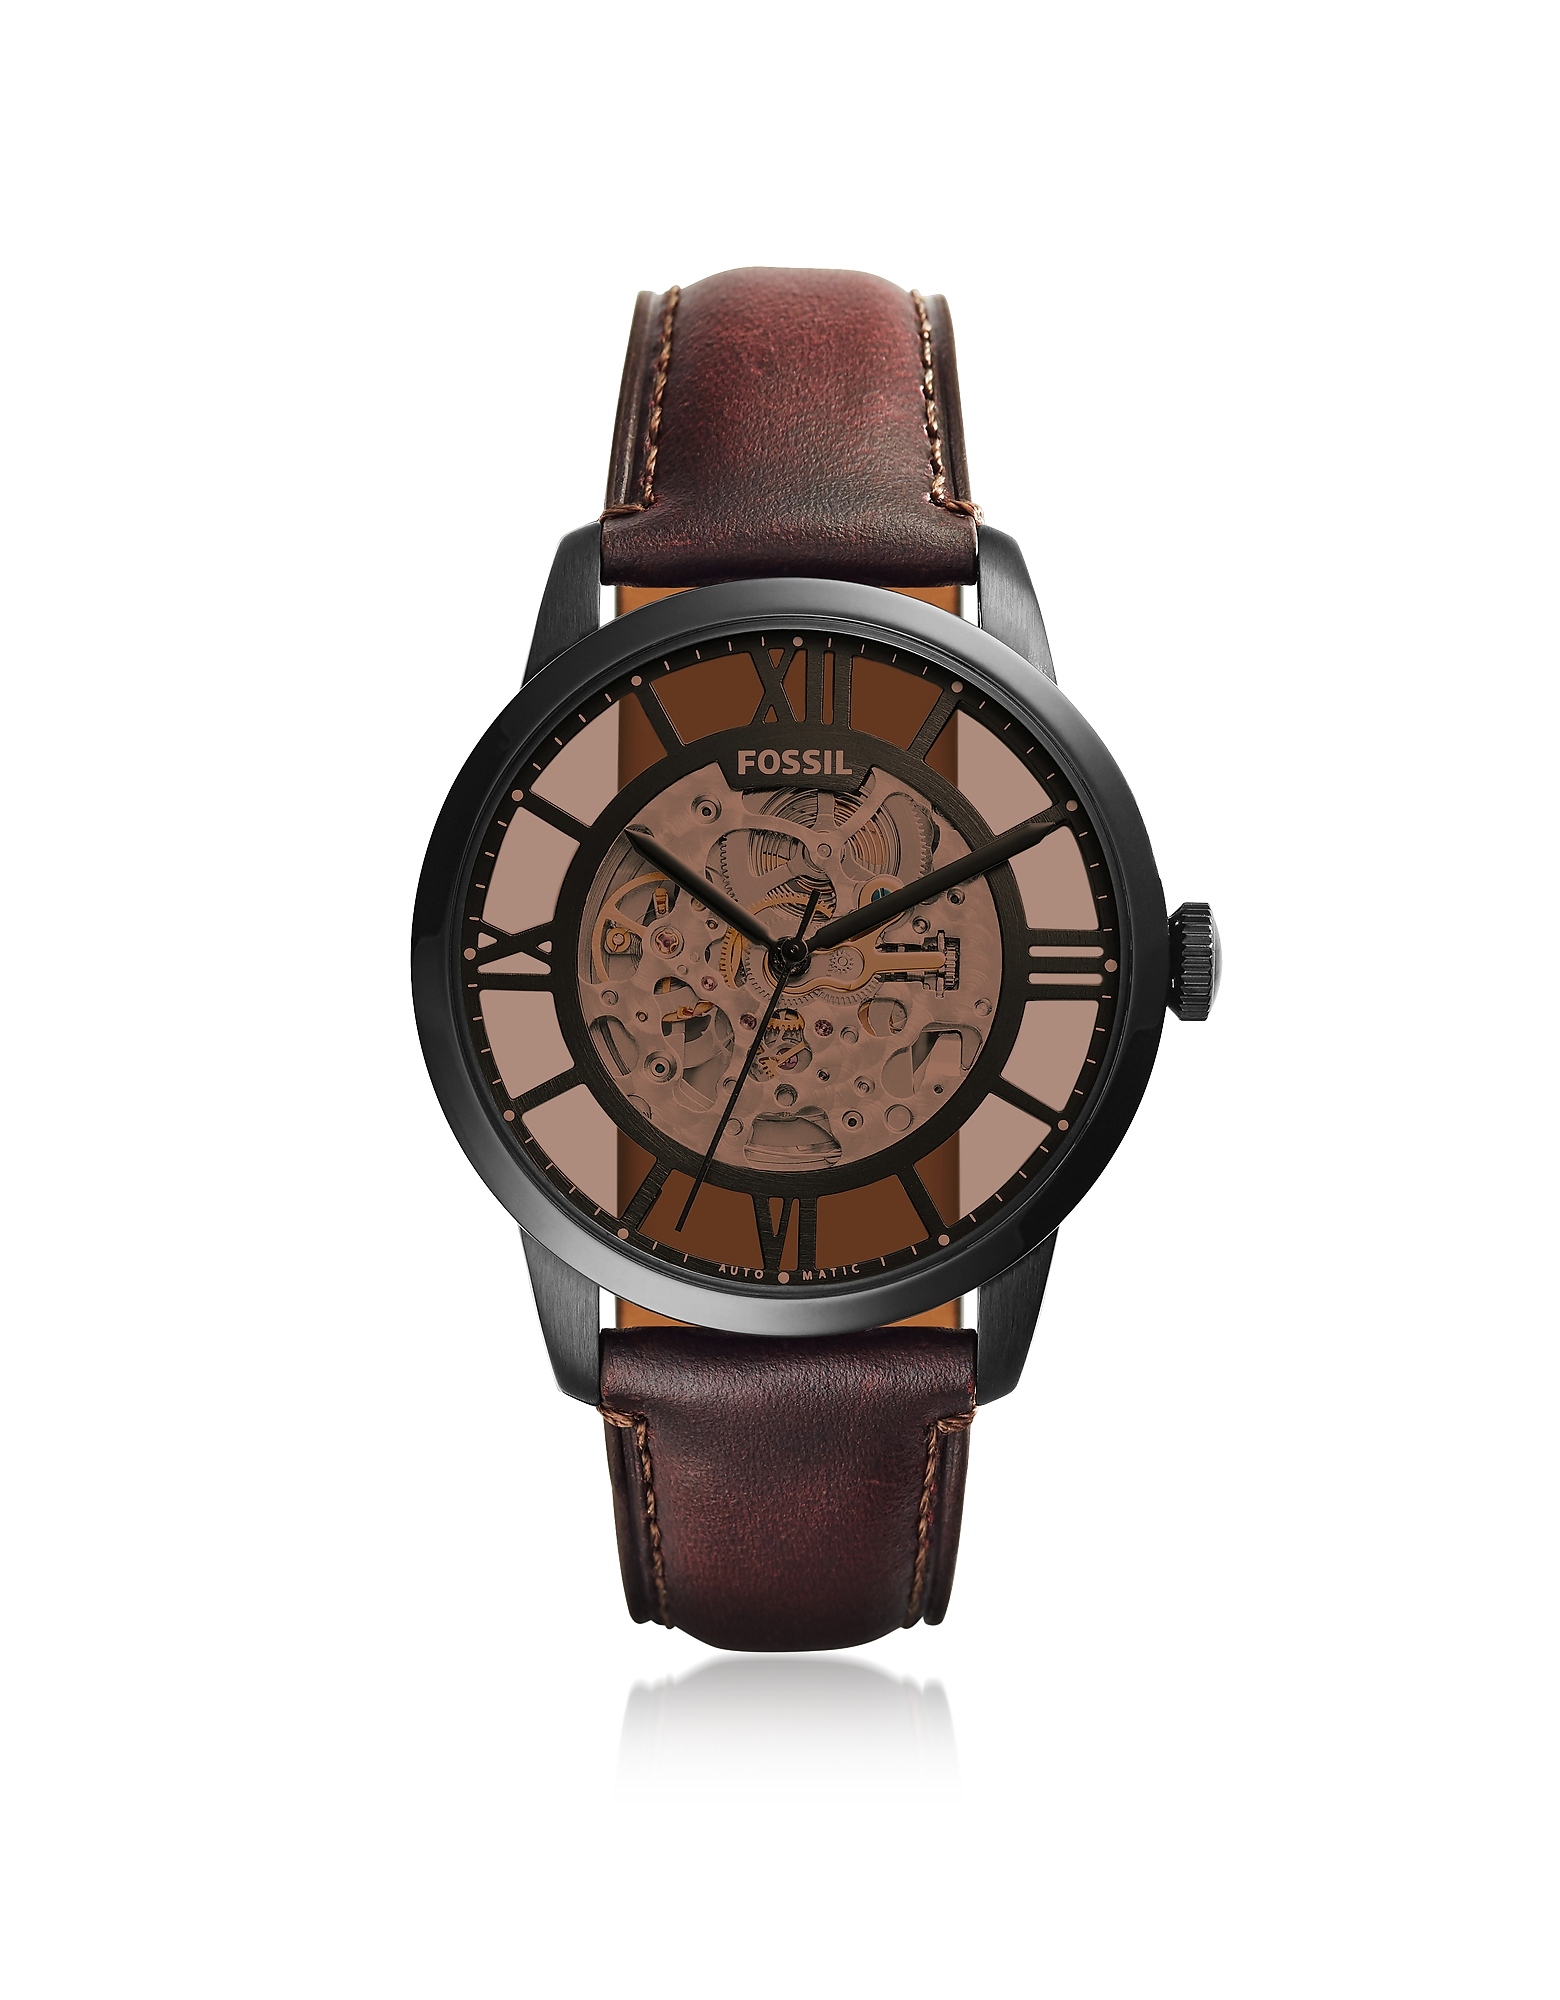 Fossil Men's Watches, Townsman Automatic Dark Brown Leather Men's Watch